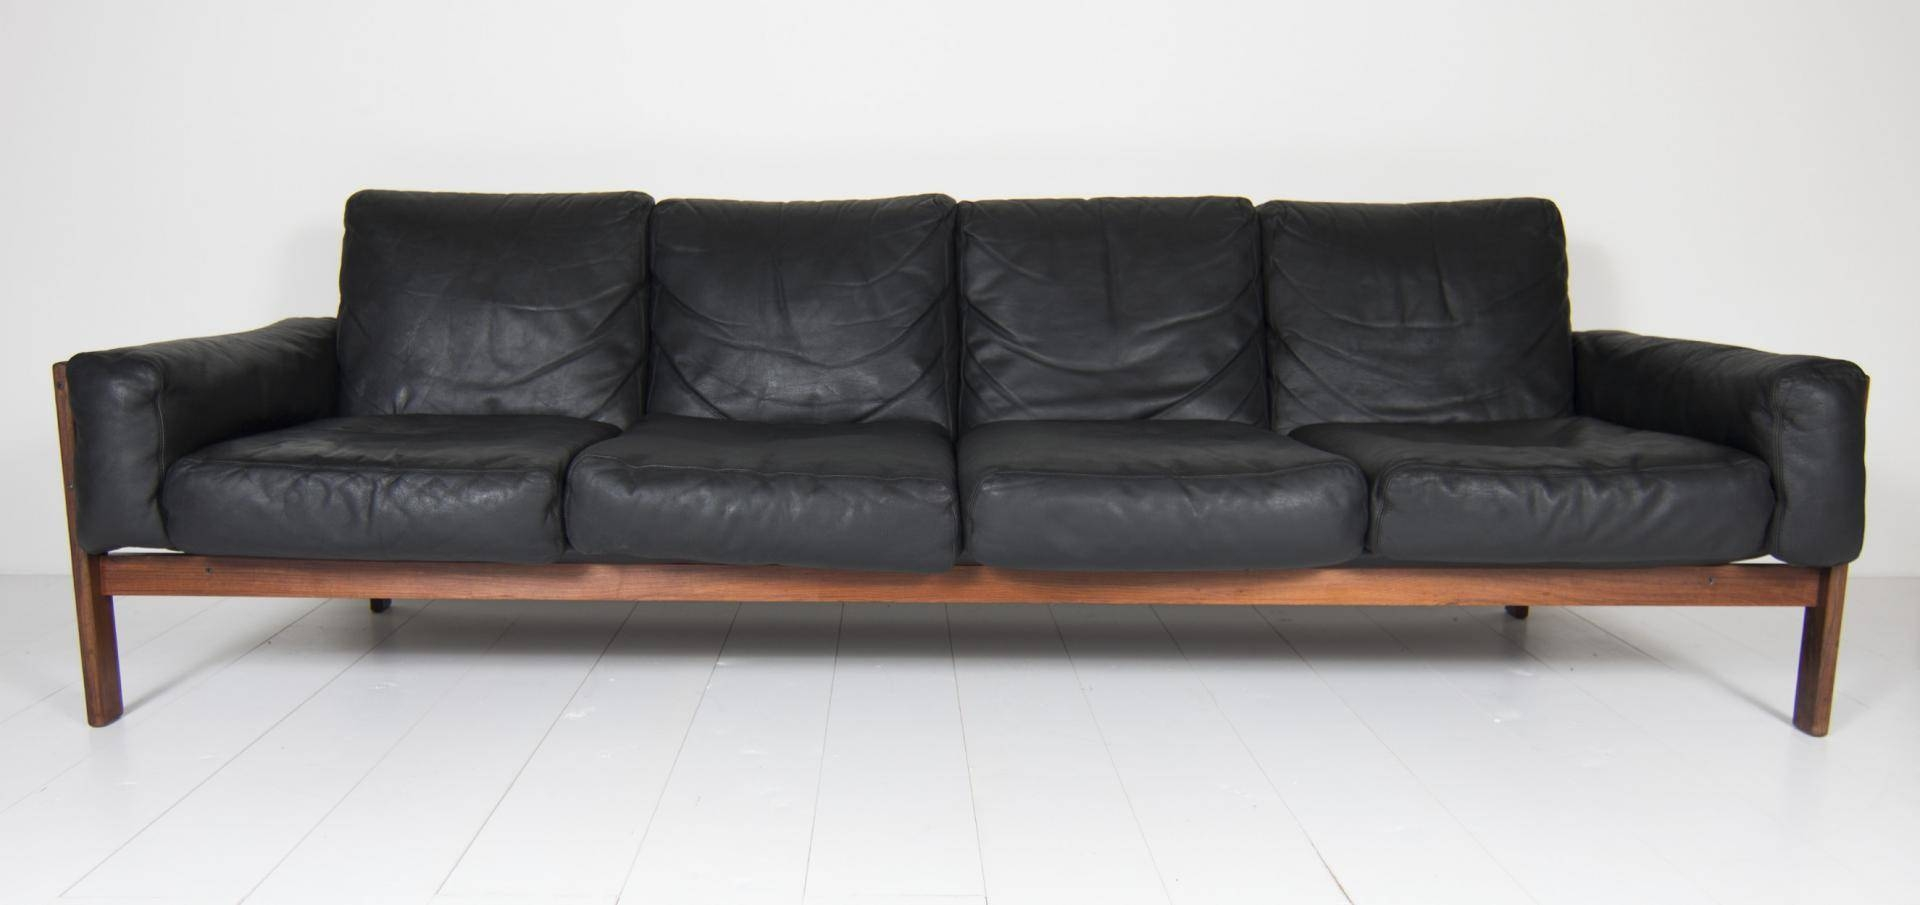 Four Seater Black Leather Sofasven Ivar Dysthe For Dokka For With 4 Seat Leather Sofas (View 14 of 30)